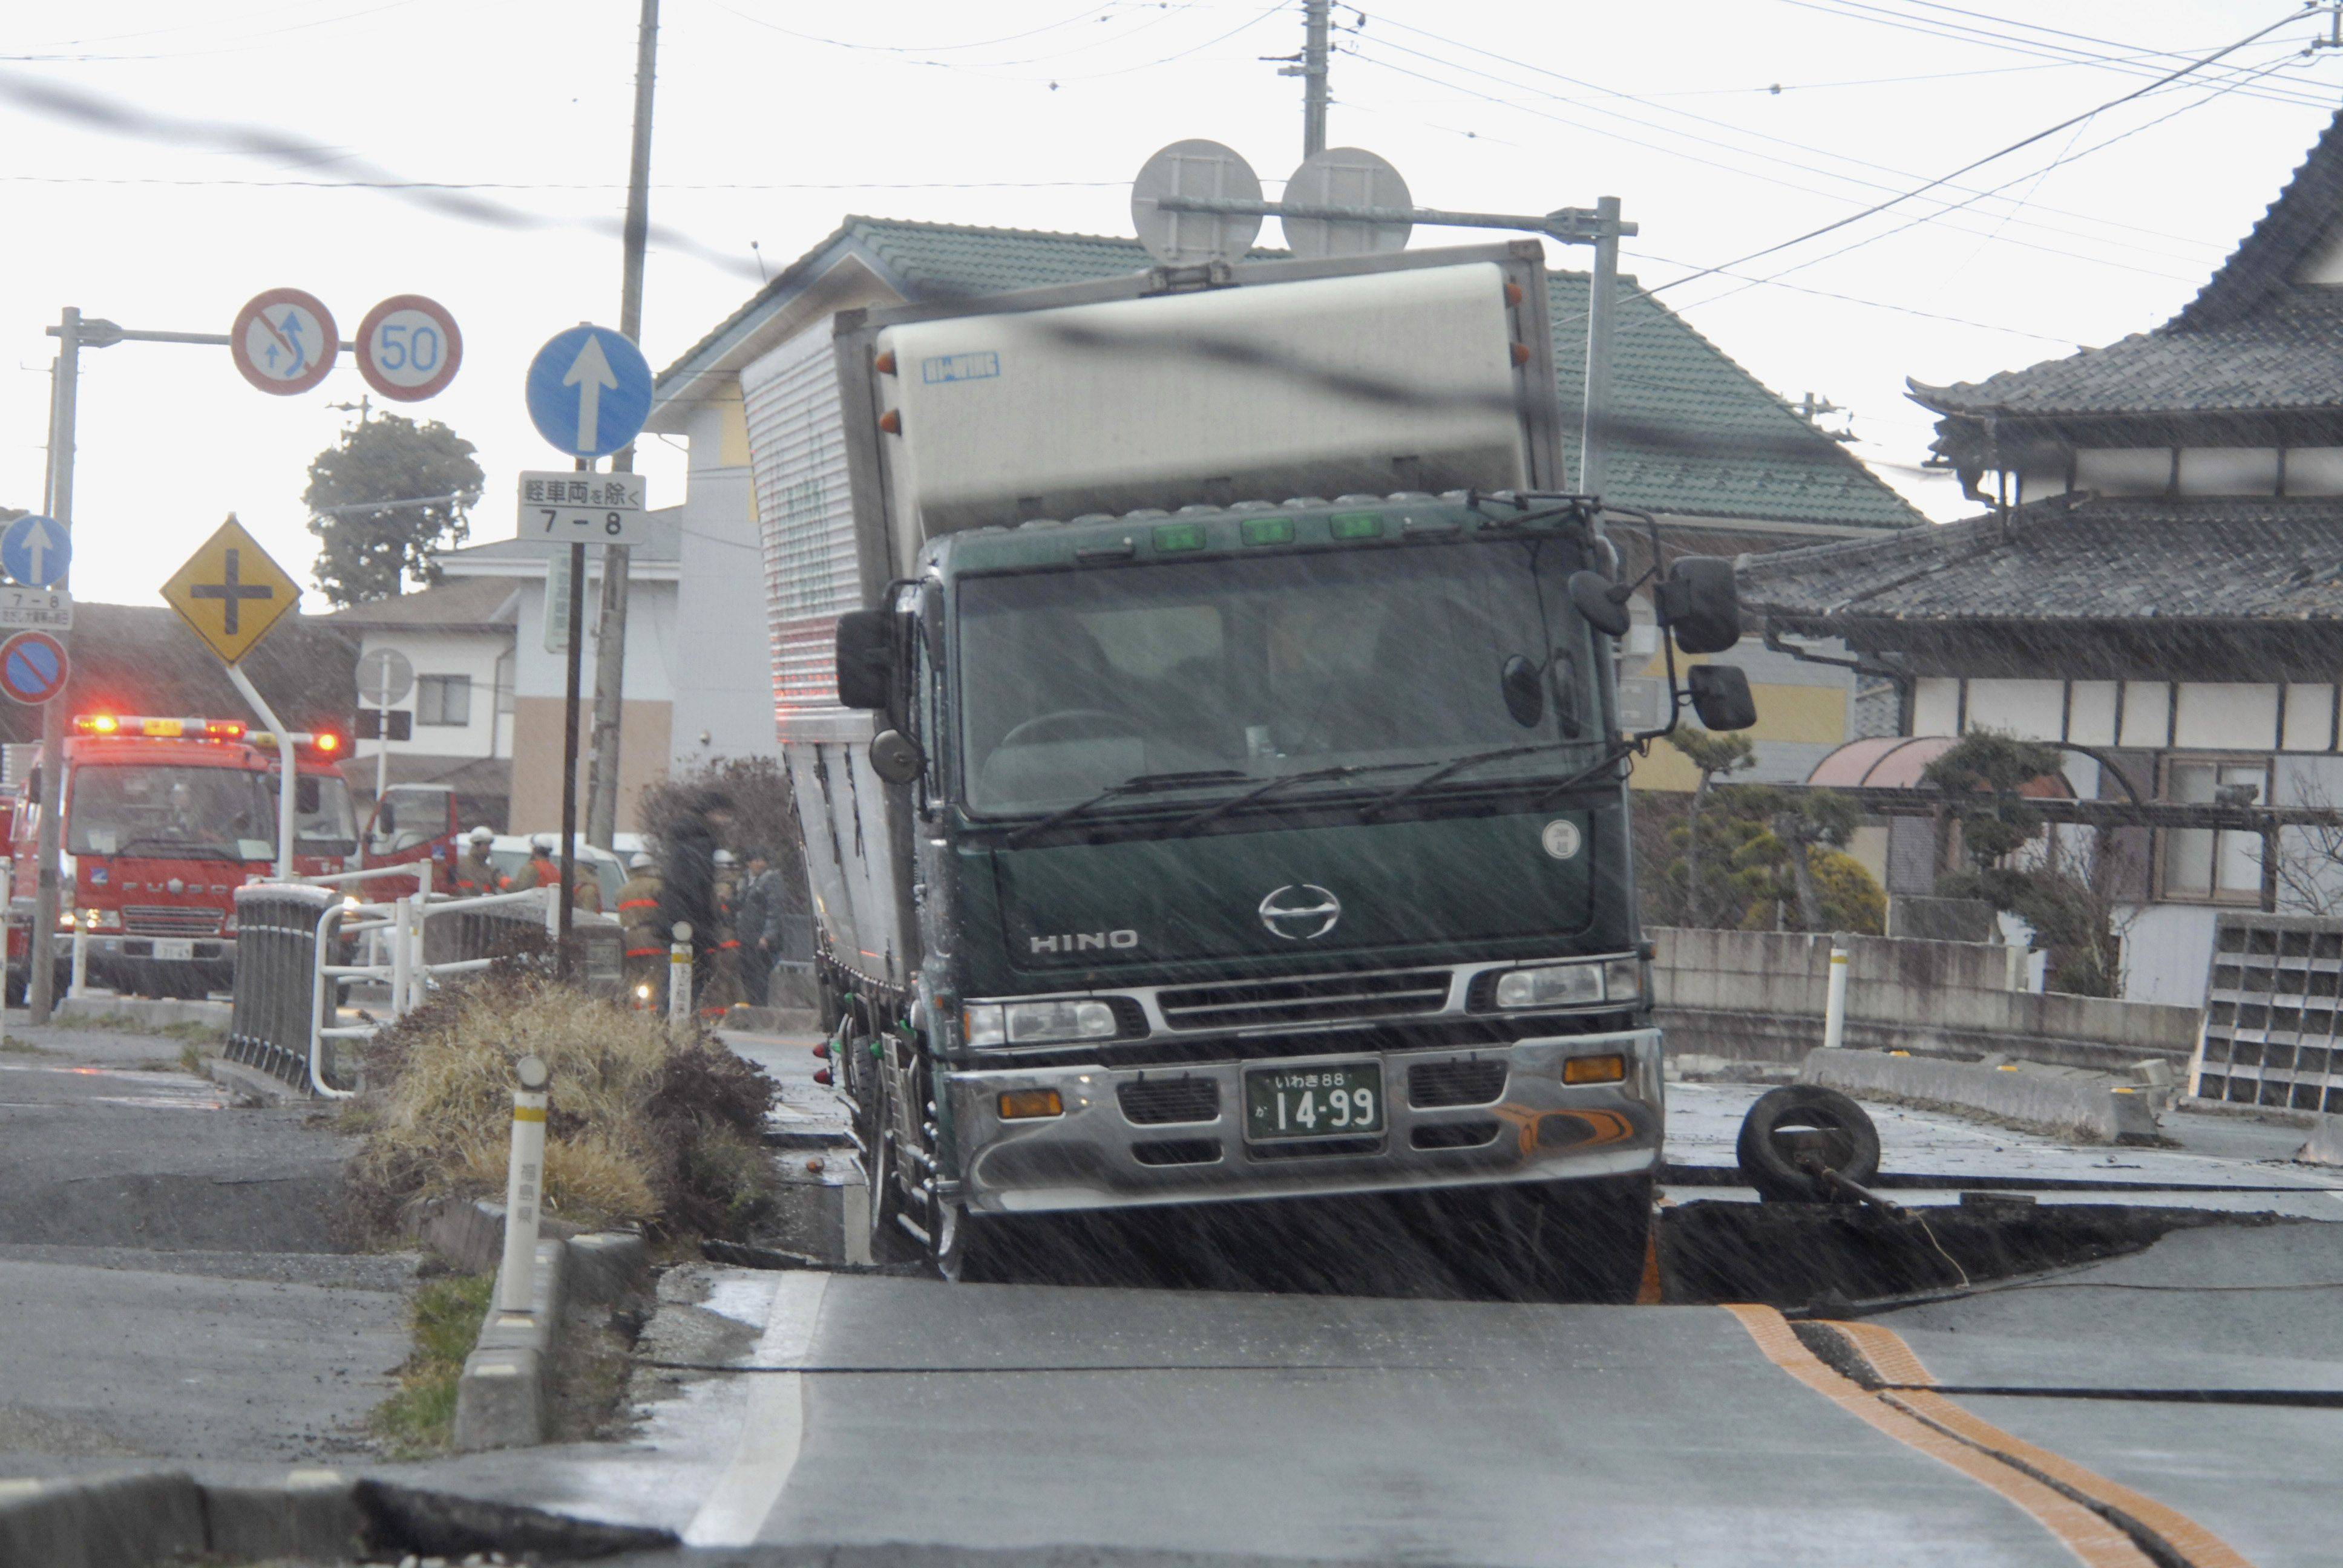 A truck remains stranded on a road damaged by a powerful earthquake in Iwaki city, Fukushima prefecture (state), Japan, Friday.